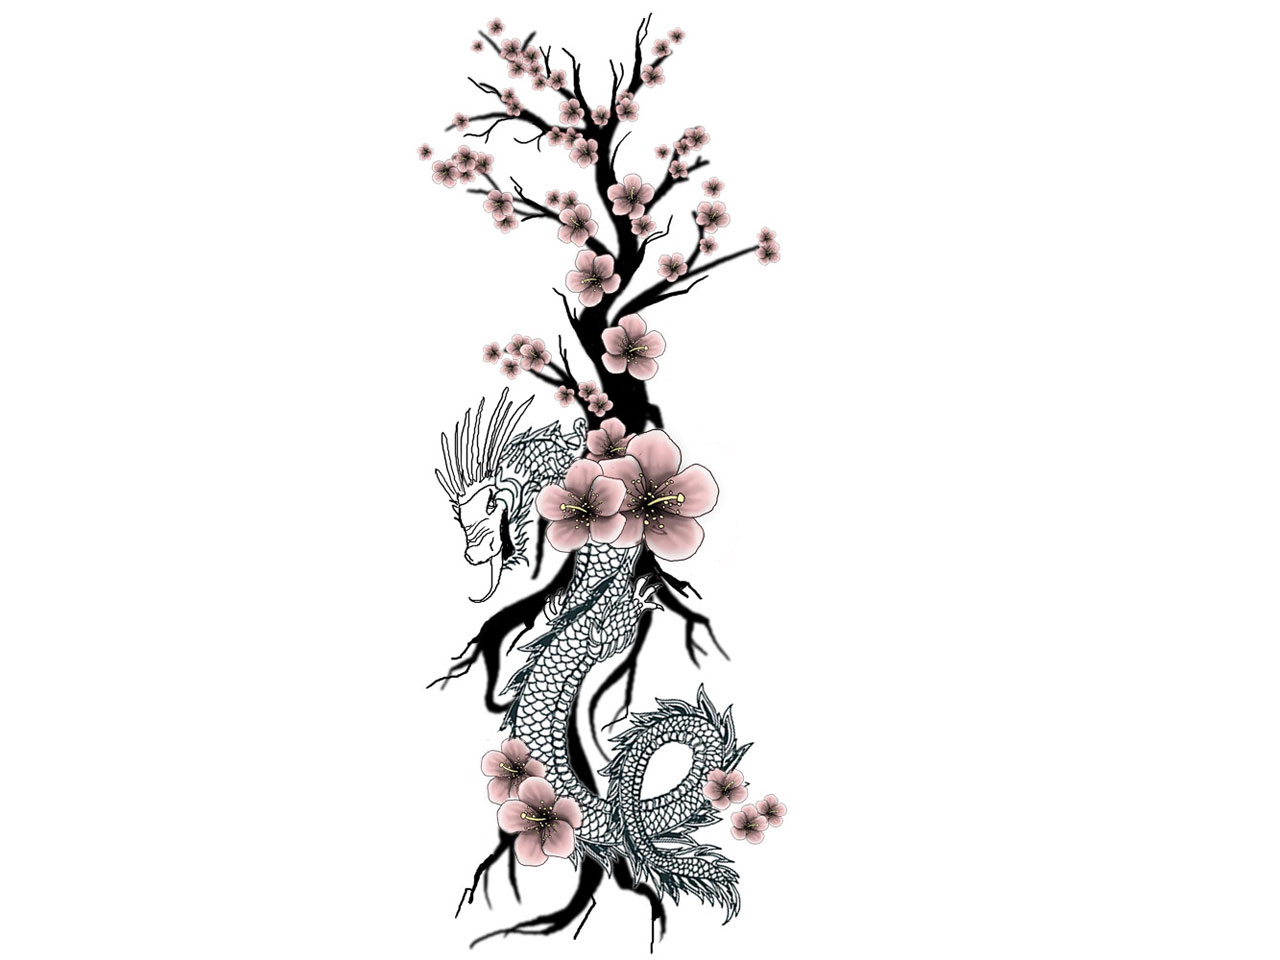 Japanese Dragon and Cherry Blossom Tattoo Design